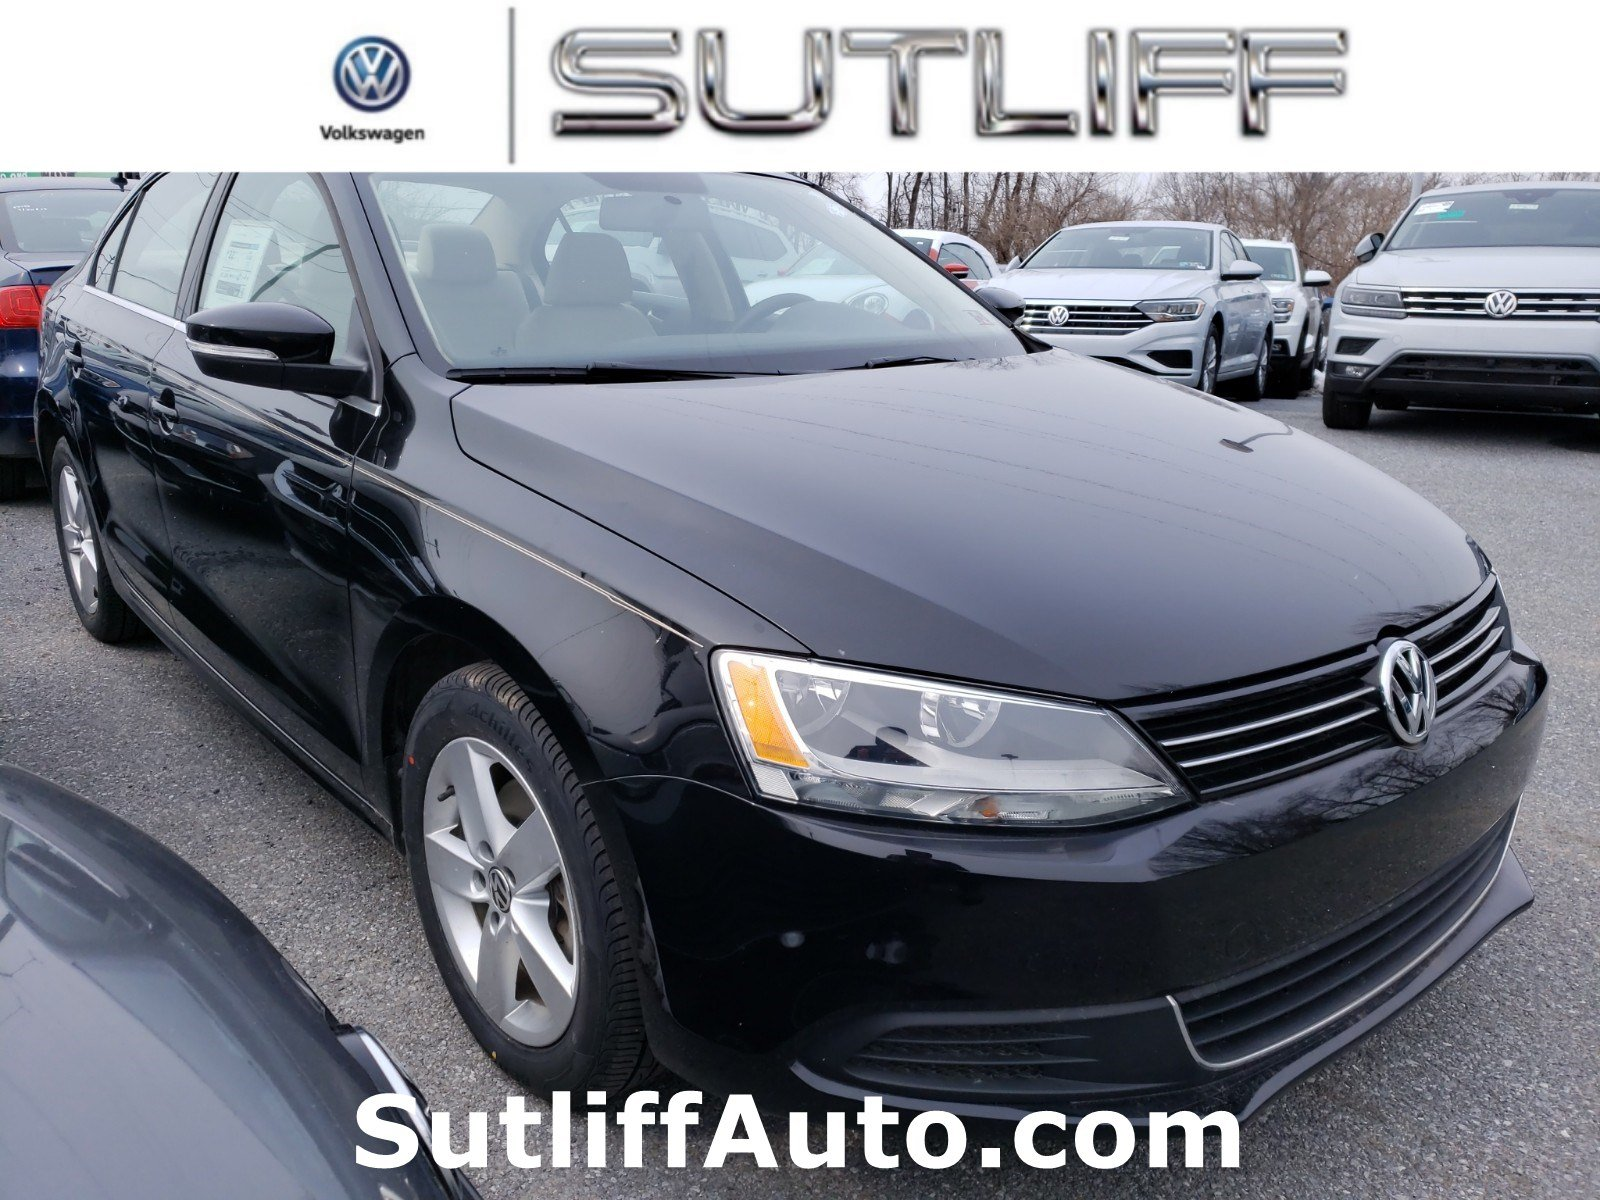 Certified Pre-Owned 2013 Volkswagen Jetta Sedan